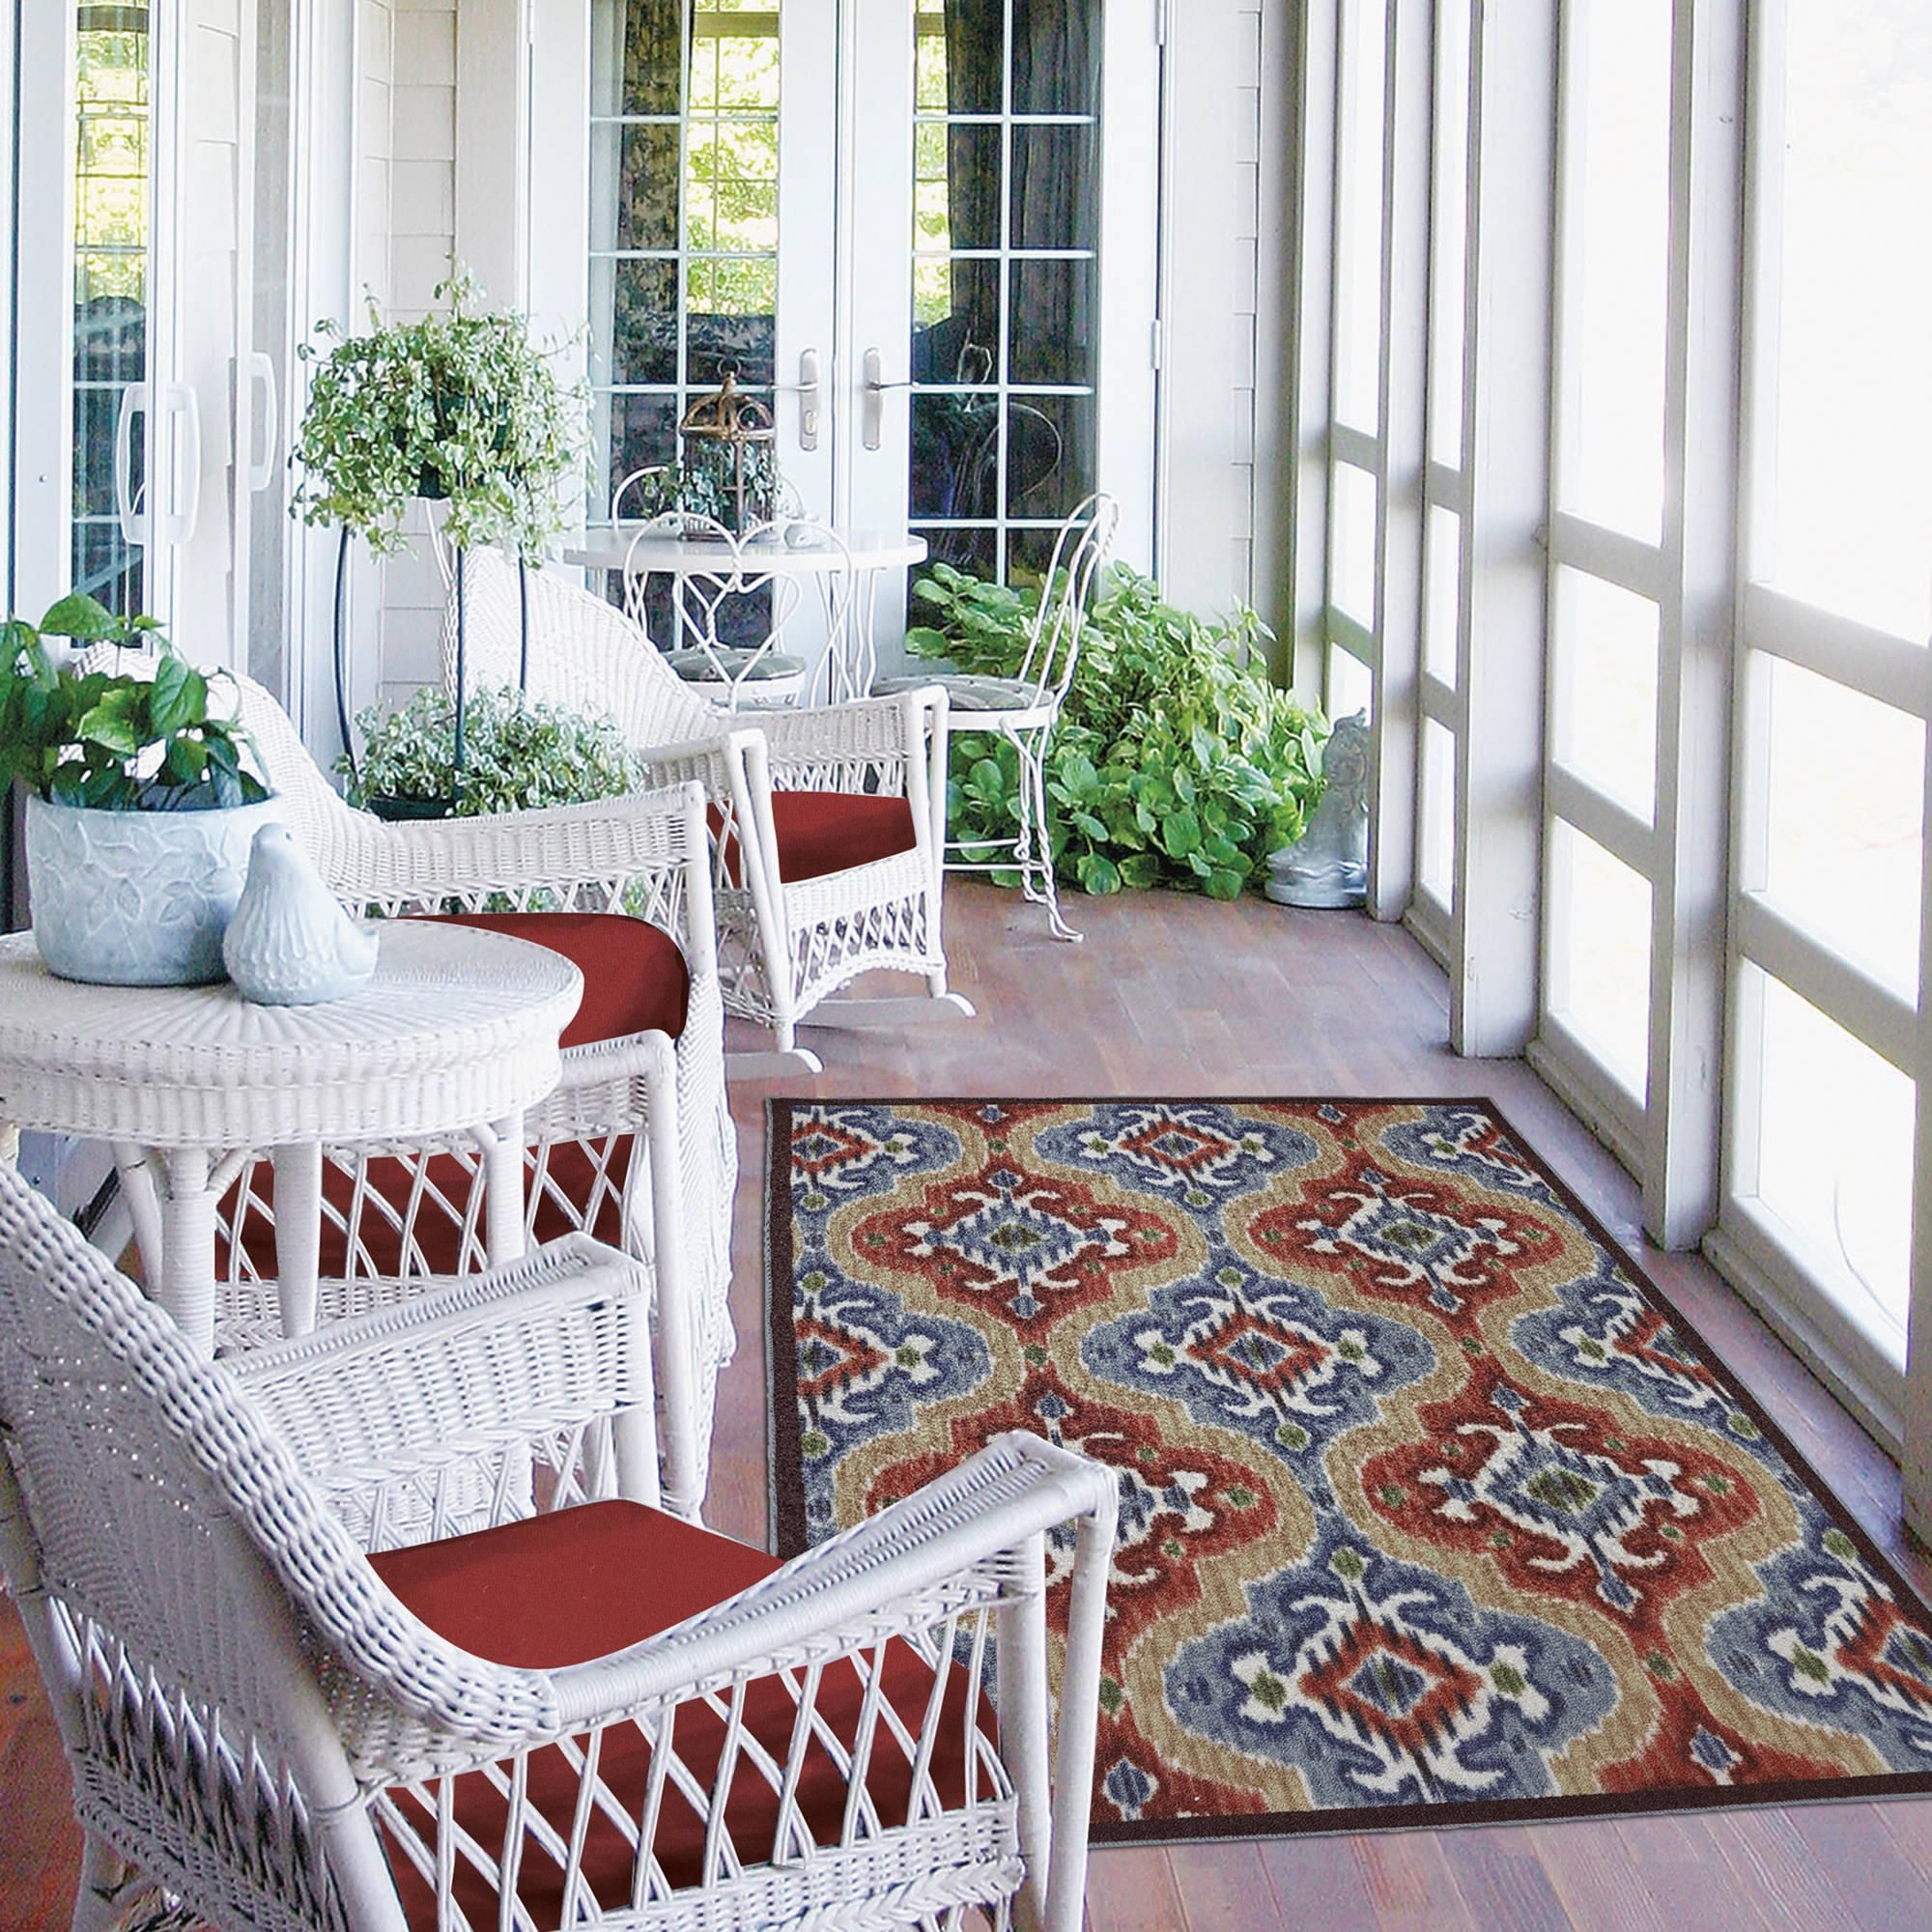 wicker furniture for sunroom. Tips And Tricks For Redecorating Your Sunroom Wicker Furniture